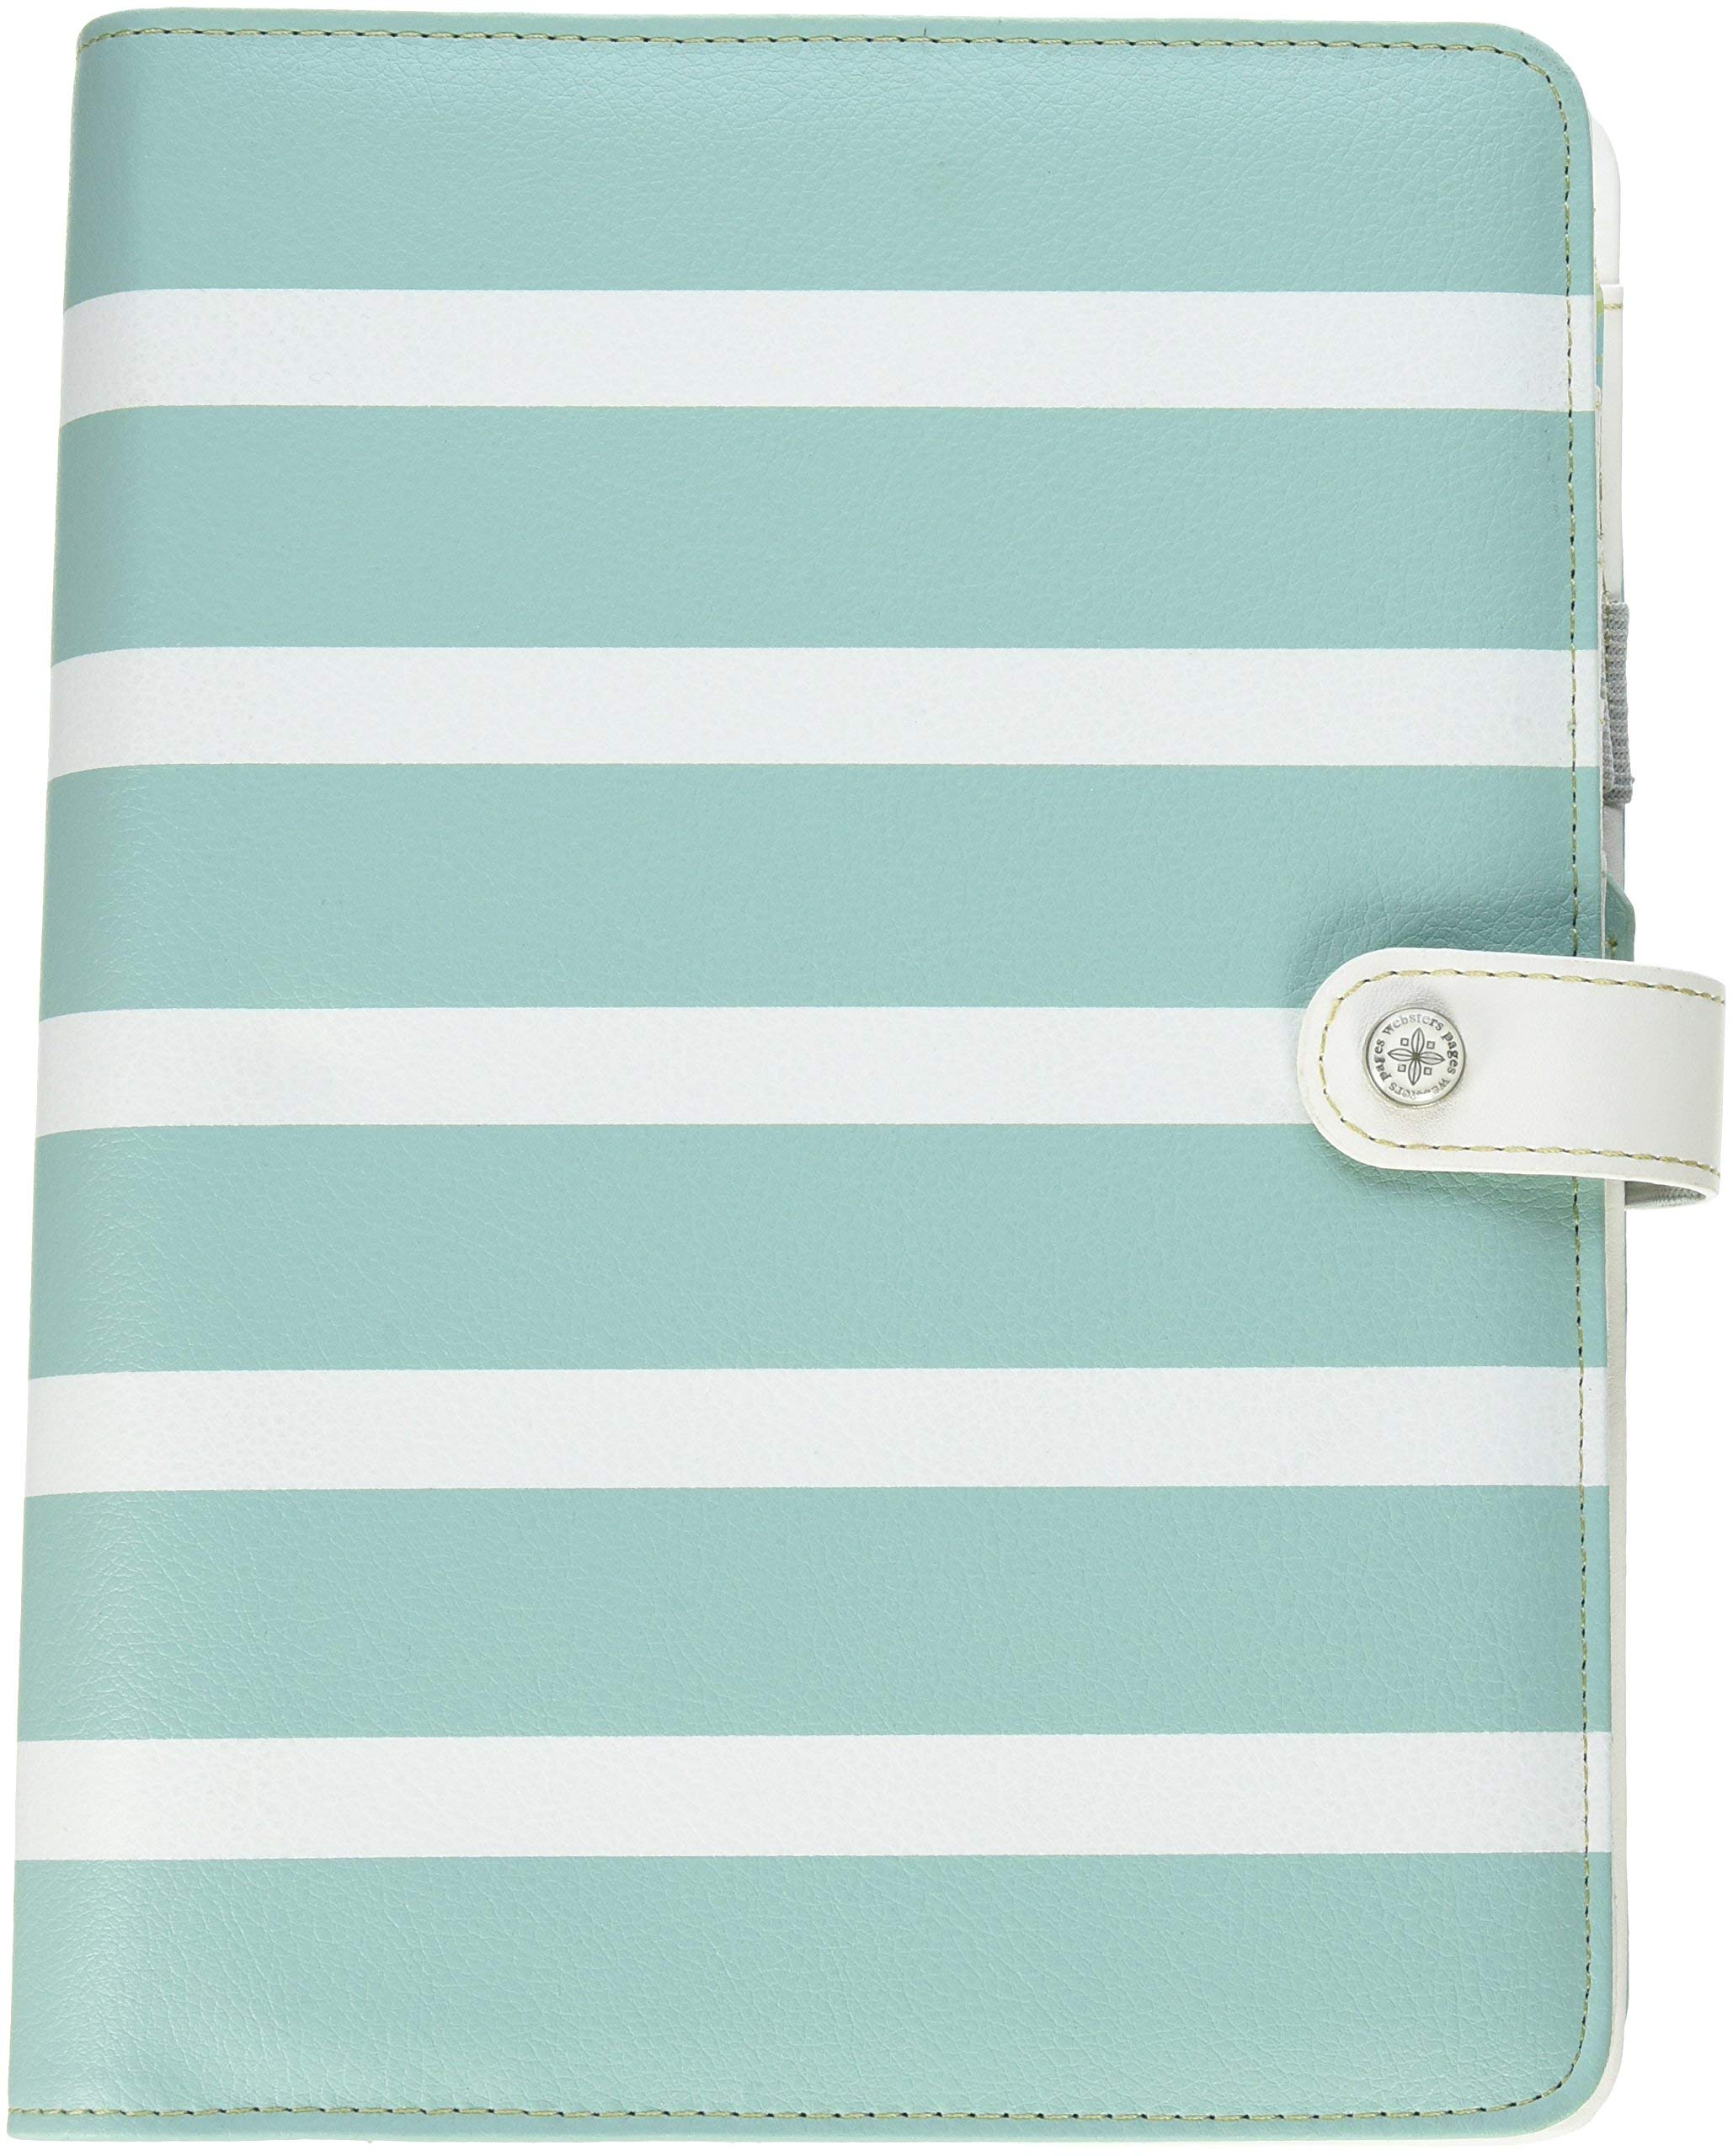 Webster's Pages A5PK001-TW-U Teal Stripe Color Crush A5 Faux Leather Planner Kit, 7.5'' x 10''